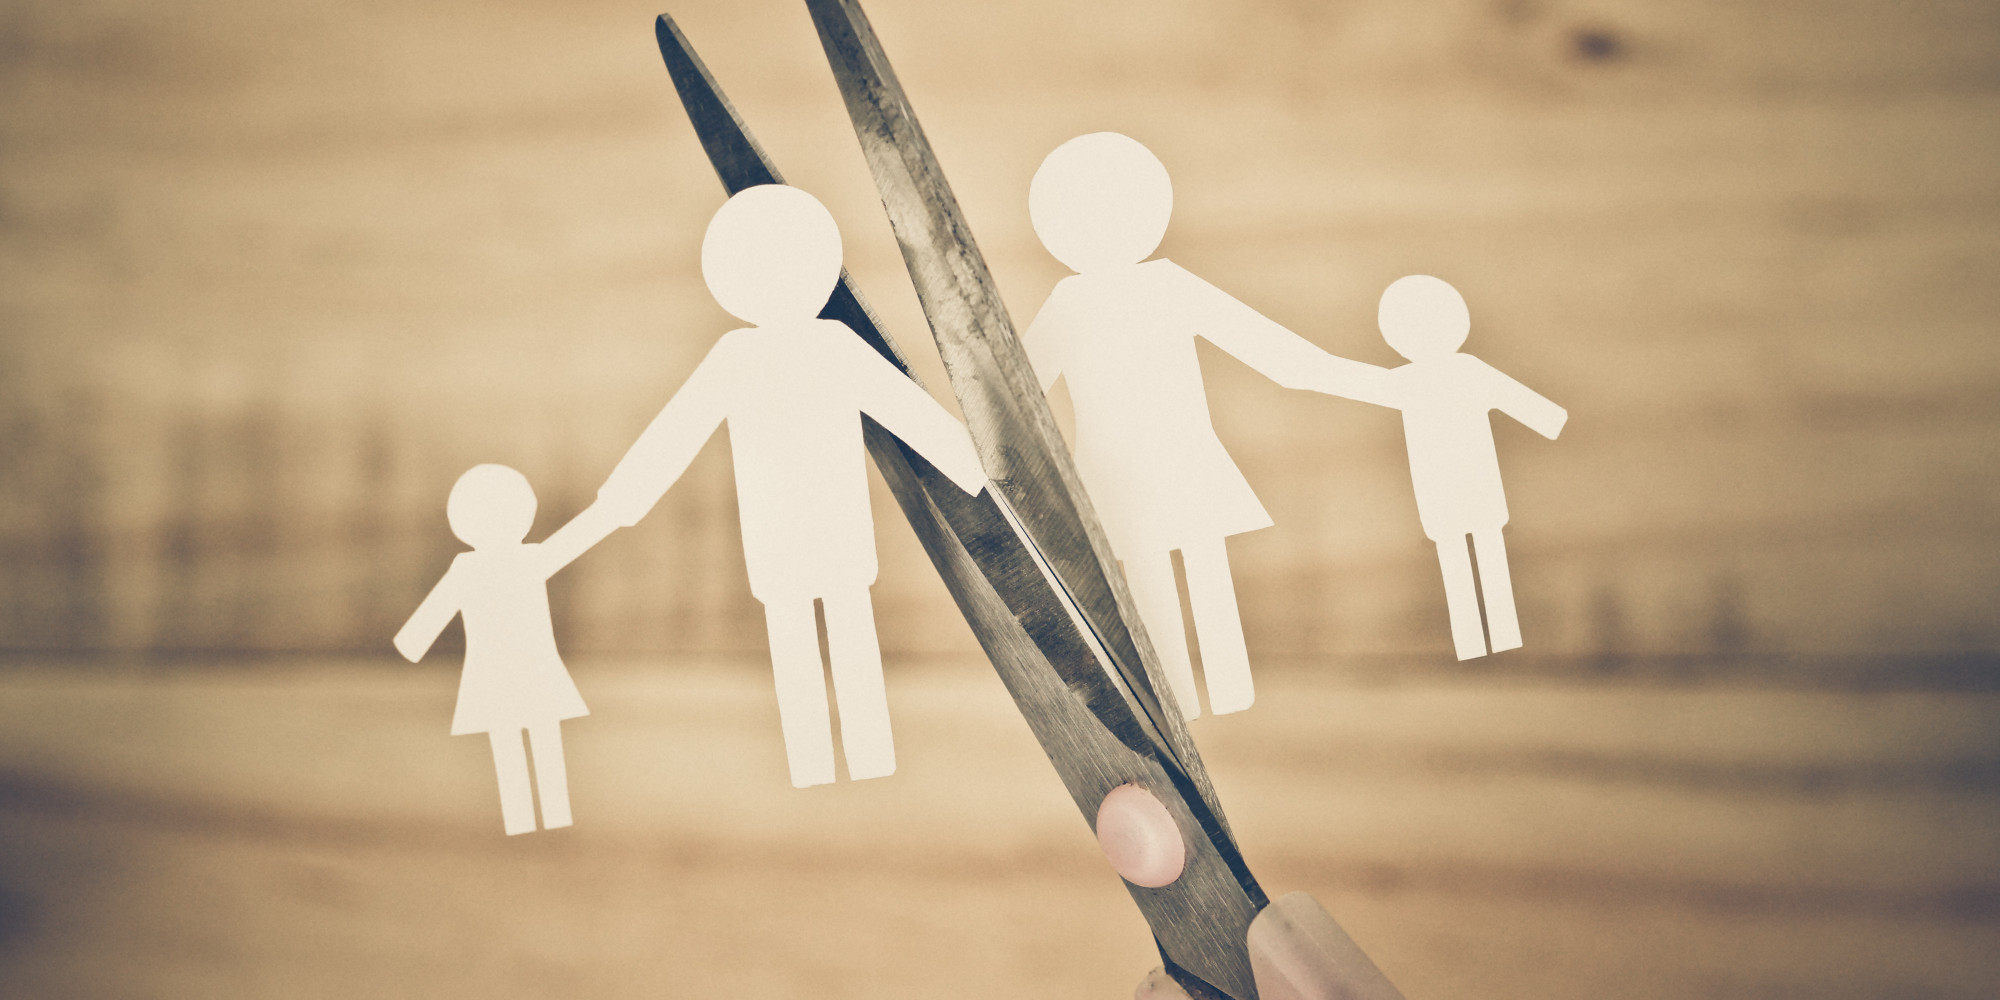 family transformation through divorce and remarriage robinson margaret